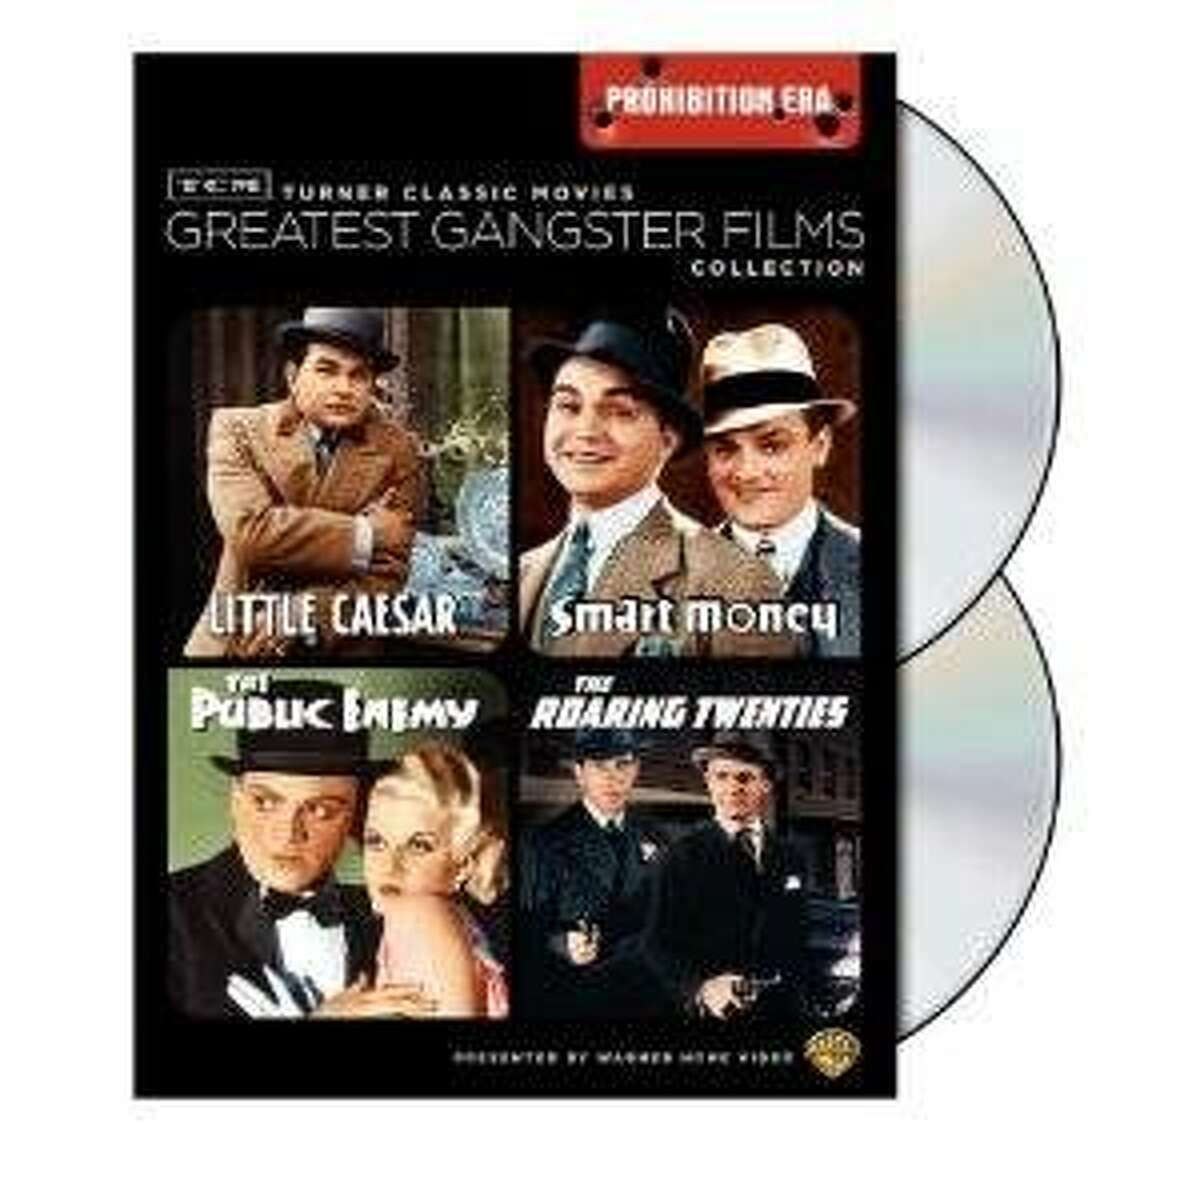 dvd cover GREATEST GANGSTER FILMS: PROHIBITION ERA